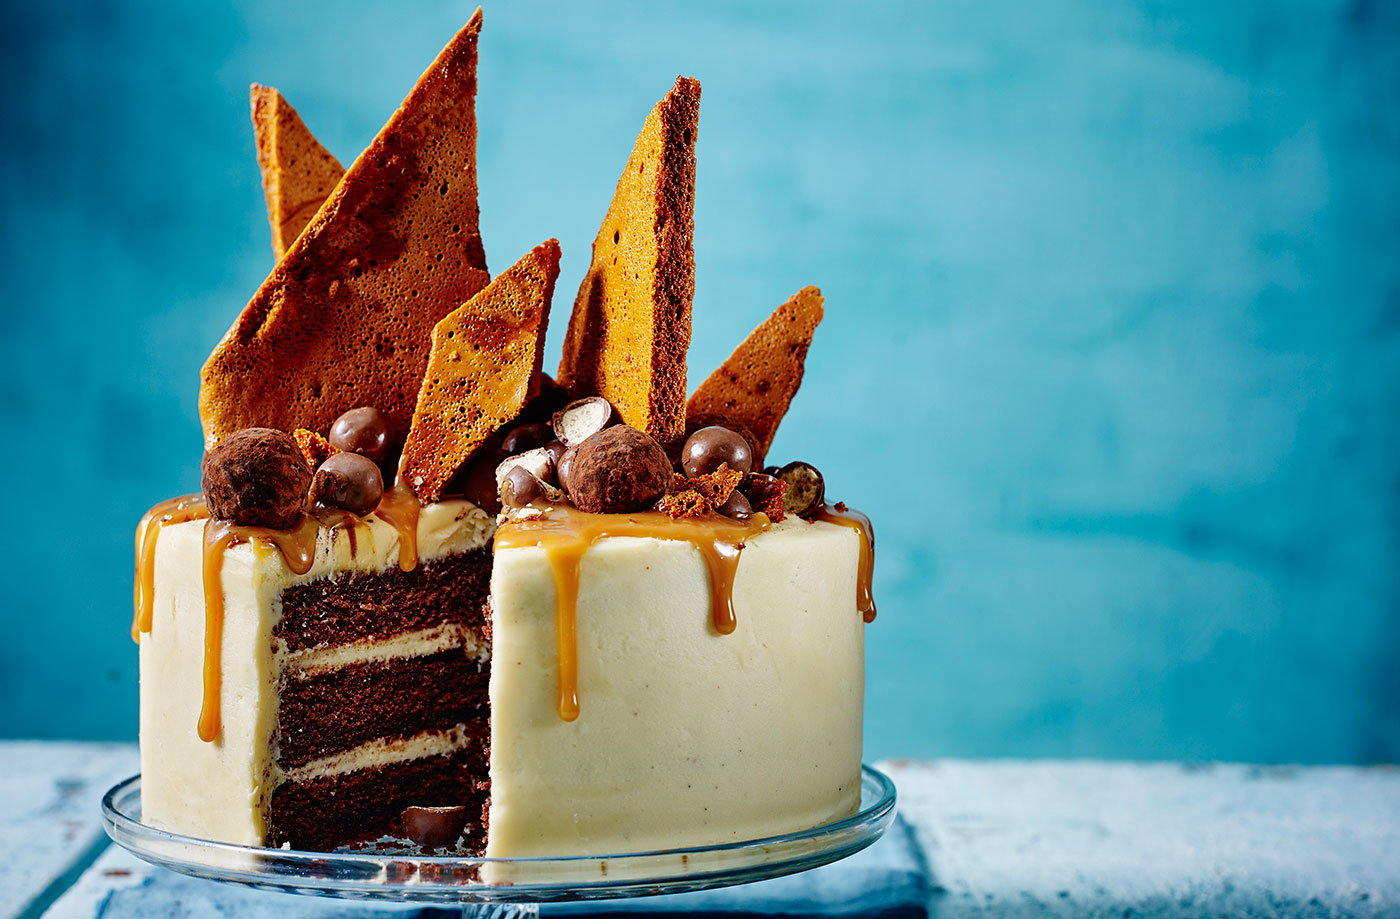 Chocolate Cake Recipe Uk Tesco: Chocolate Crackle Cake